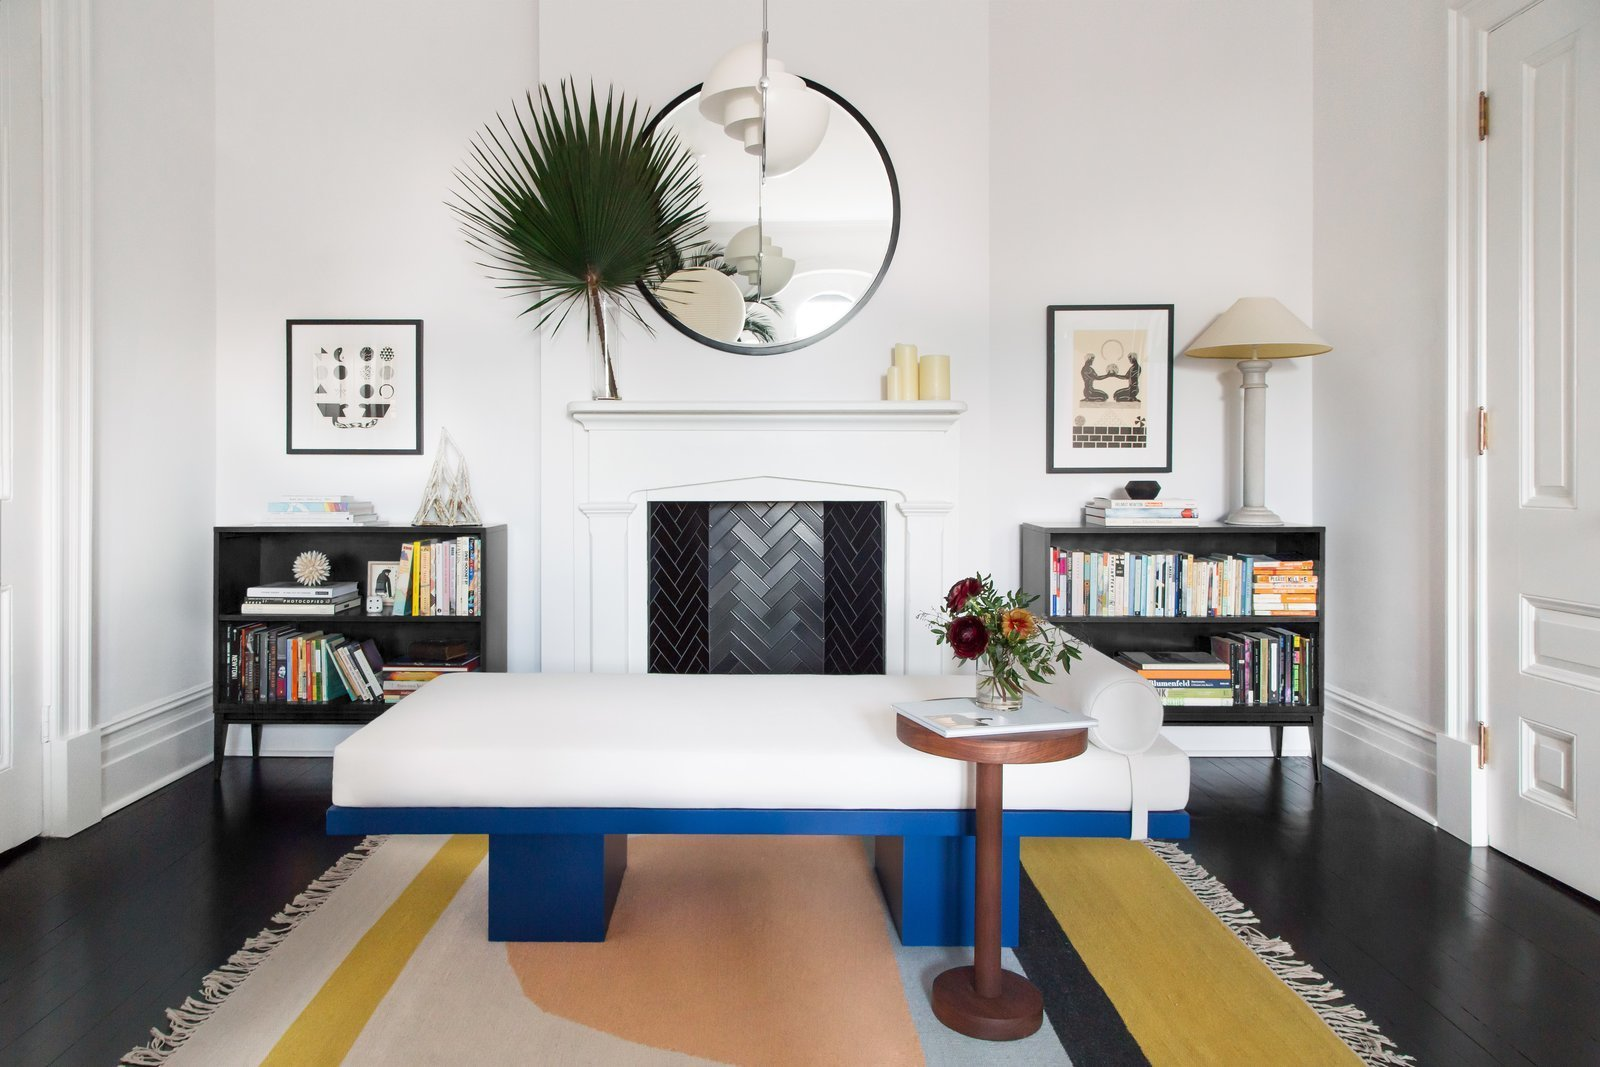 Living Room, Pendant Lighting, Table Lighting, Rug Floor, and Bookcase  Photo 6 of 22 in A 19th-Century Schoolhouse in Brooklyn Becomes a Classy Apartment